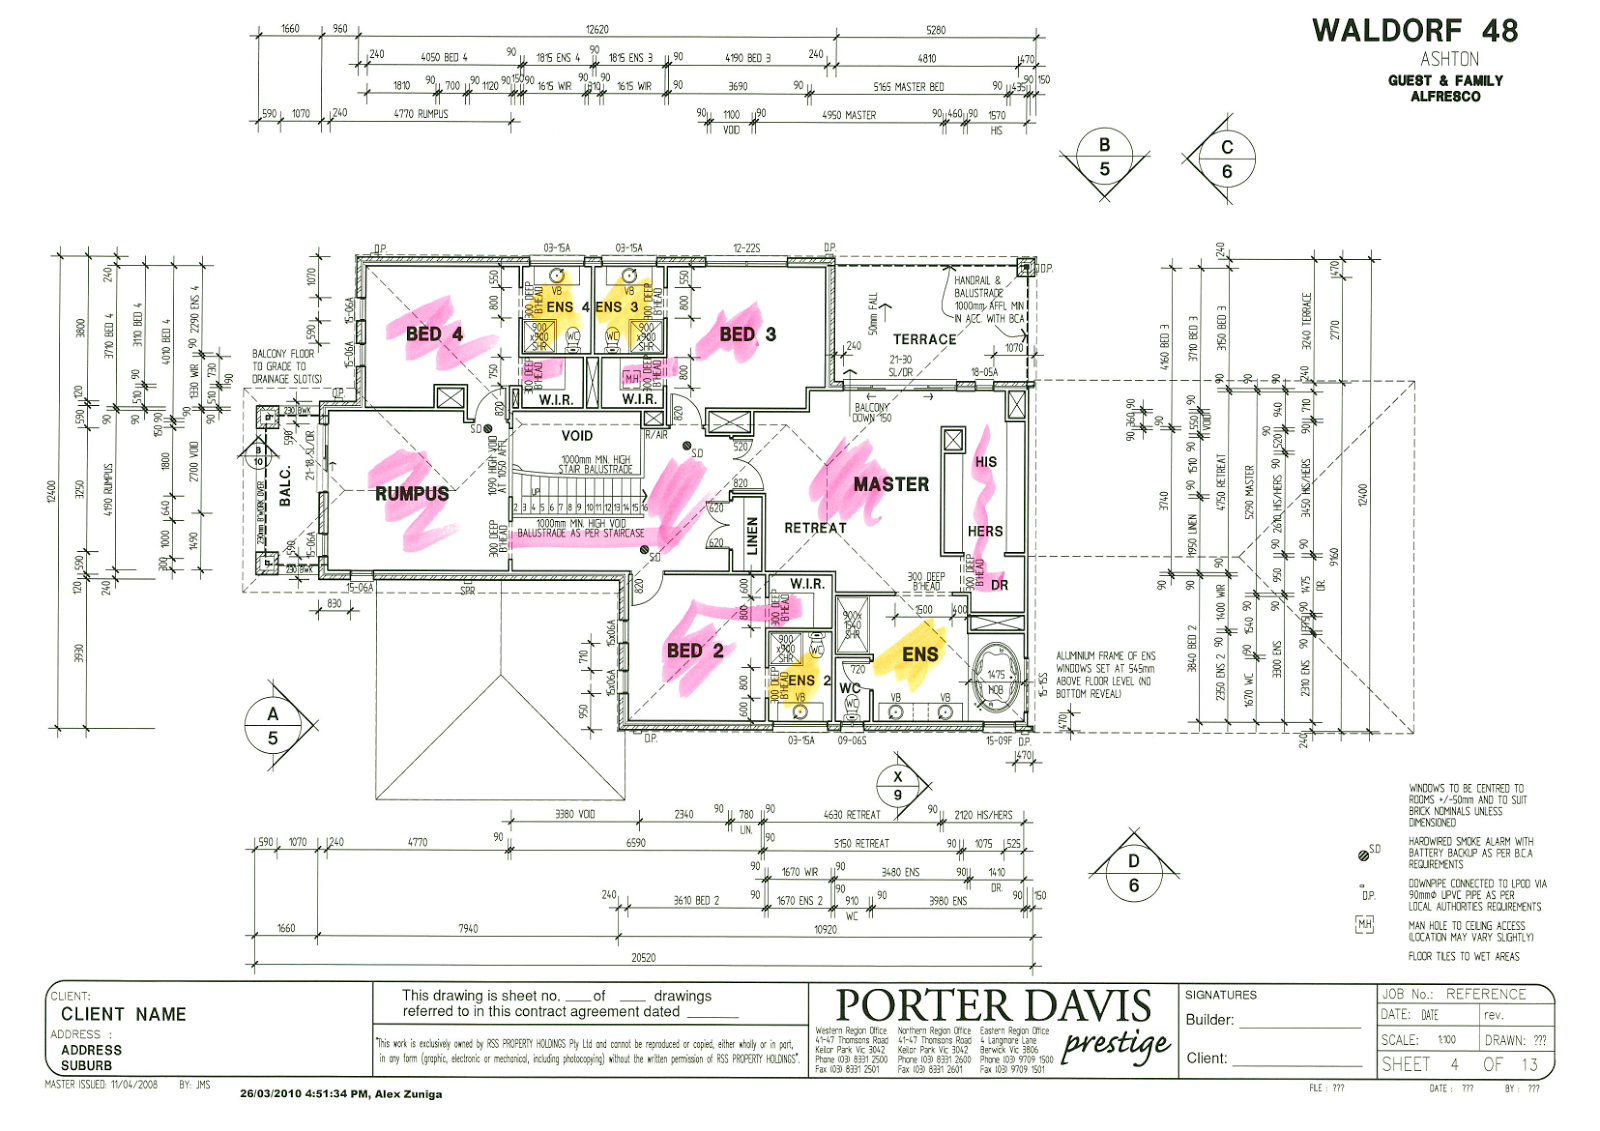 flooring promo layout plan building the waldorf 48 with